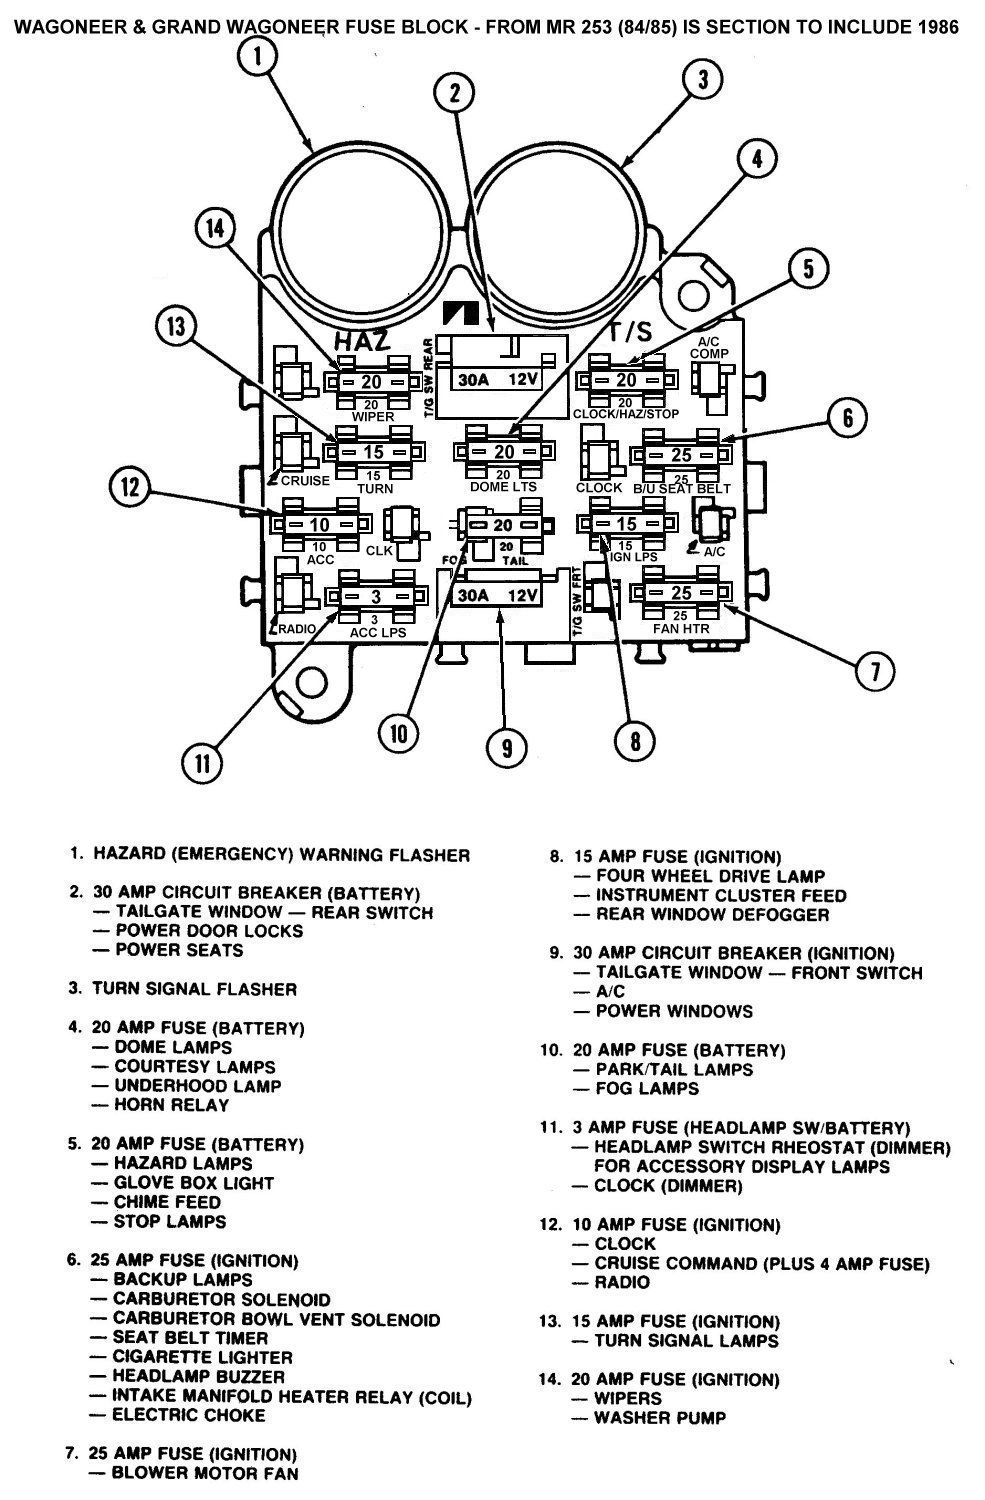 1984 4.0 inline 6 and I need A wiring diagram..control